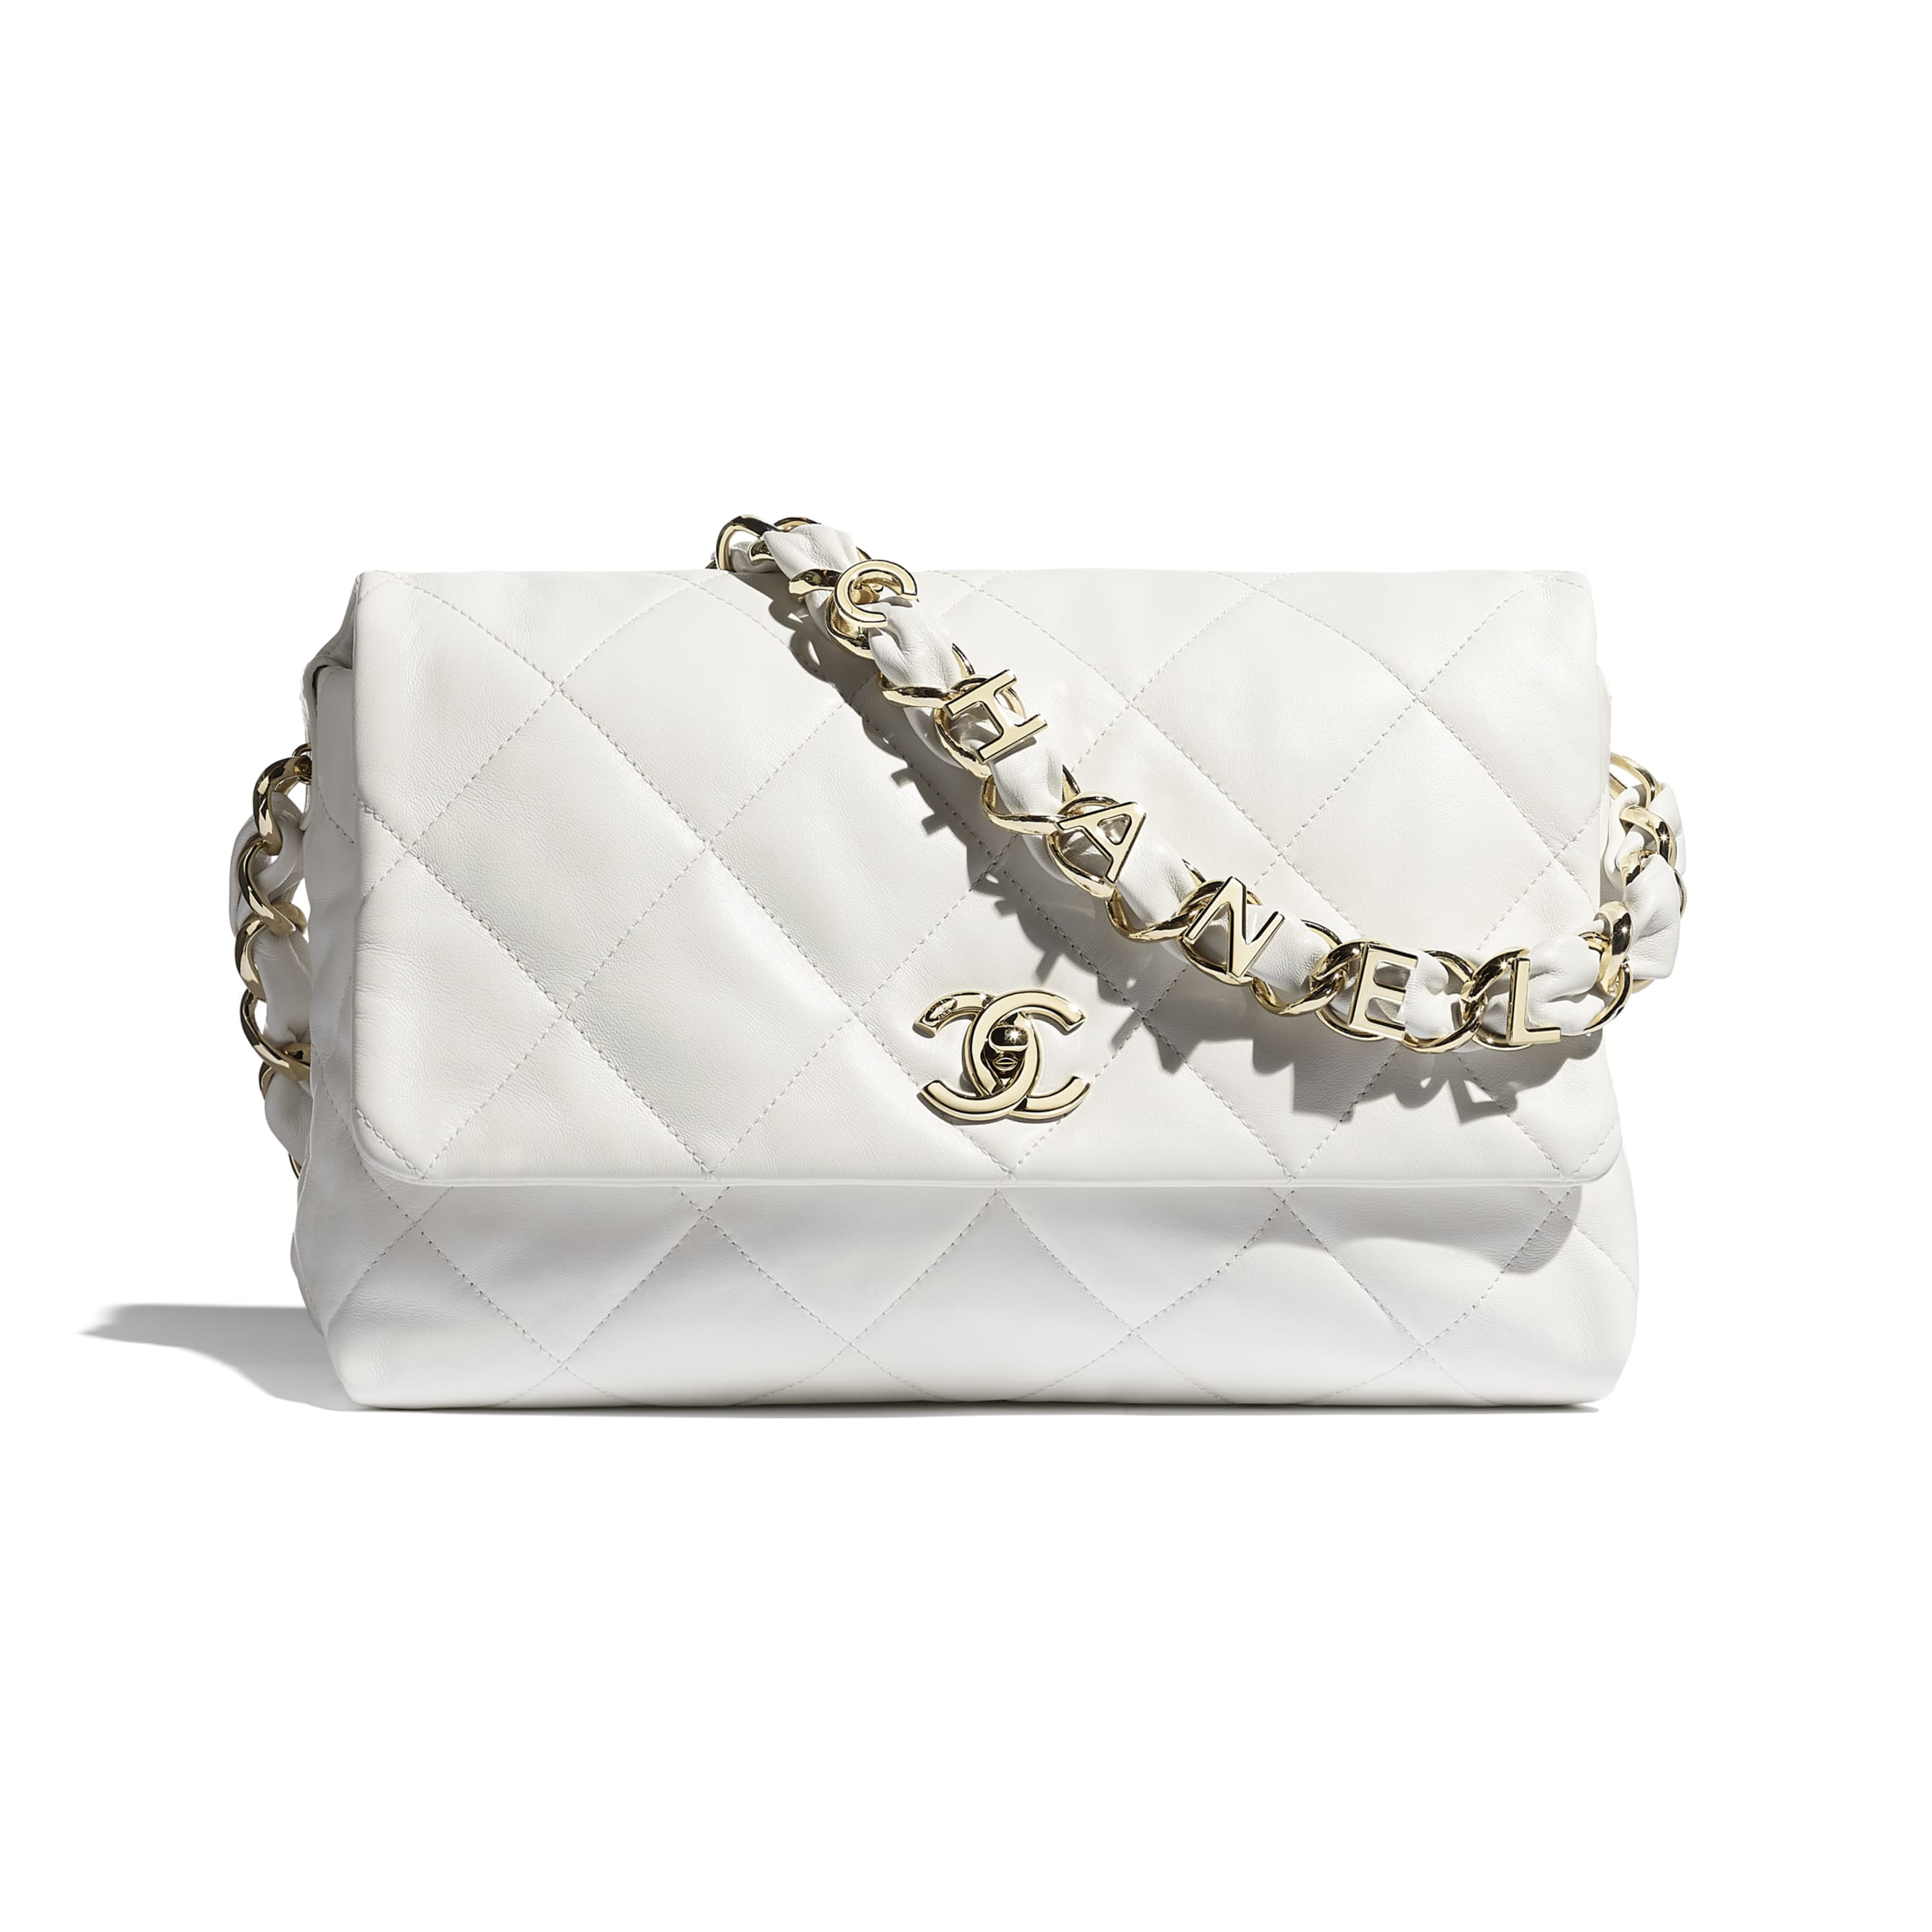 Large Flap Bag - White - Lambskin - CHANEL - Default view - see standard sized version